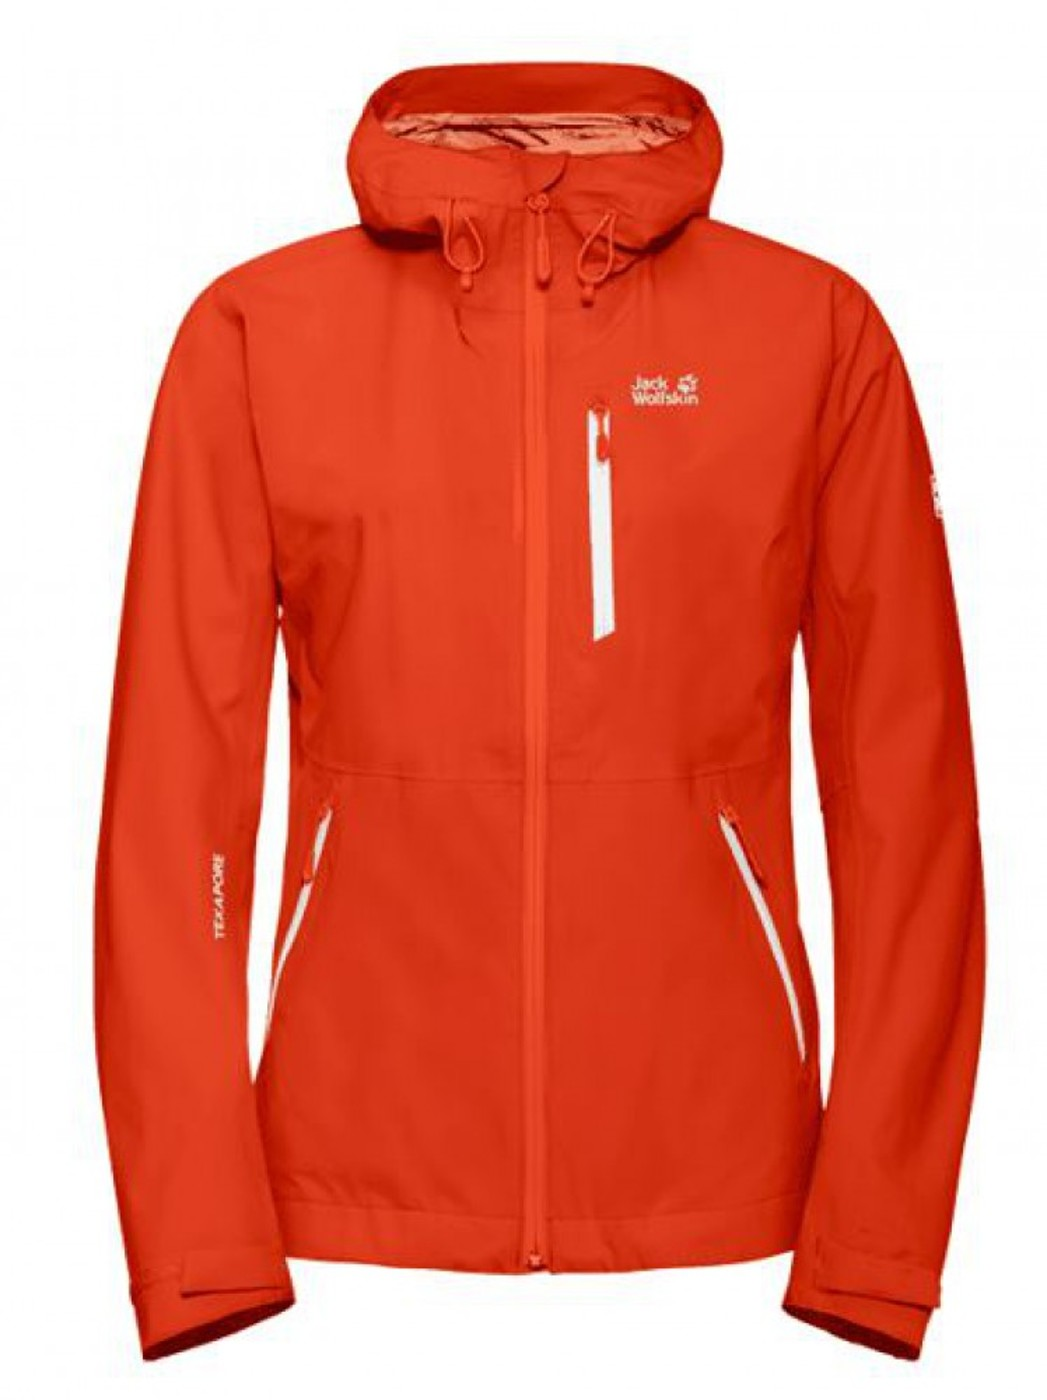 JACK WOLFSKIN EAGLE PEAK JACKET W - Damen